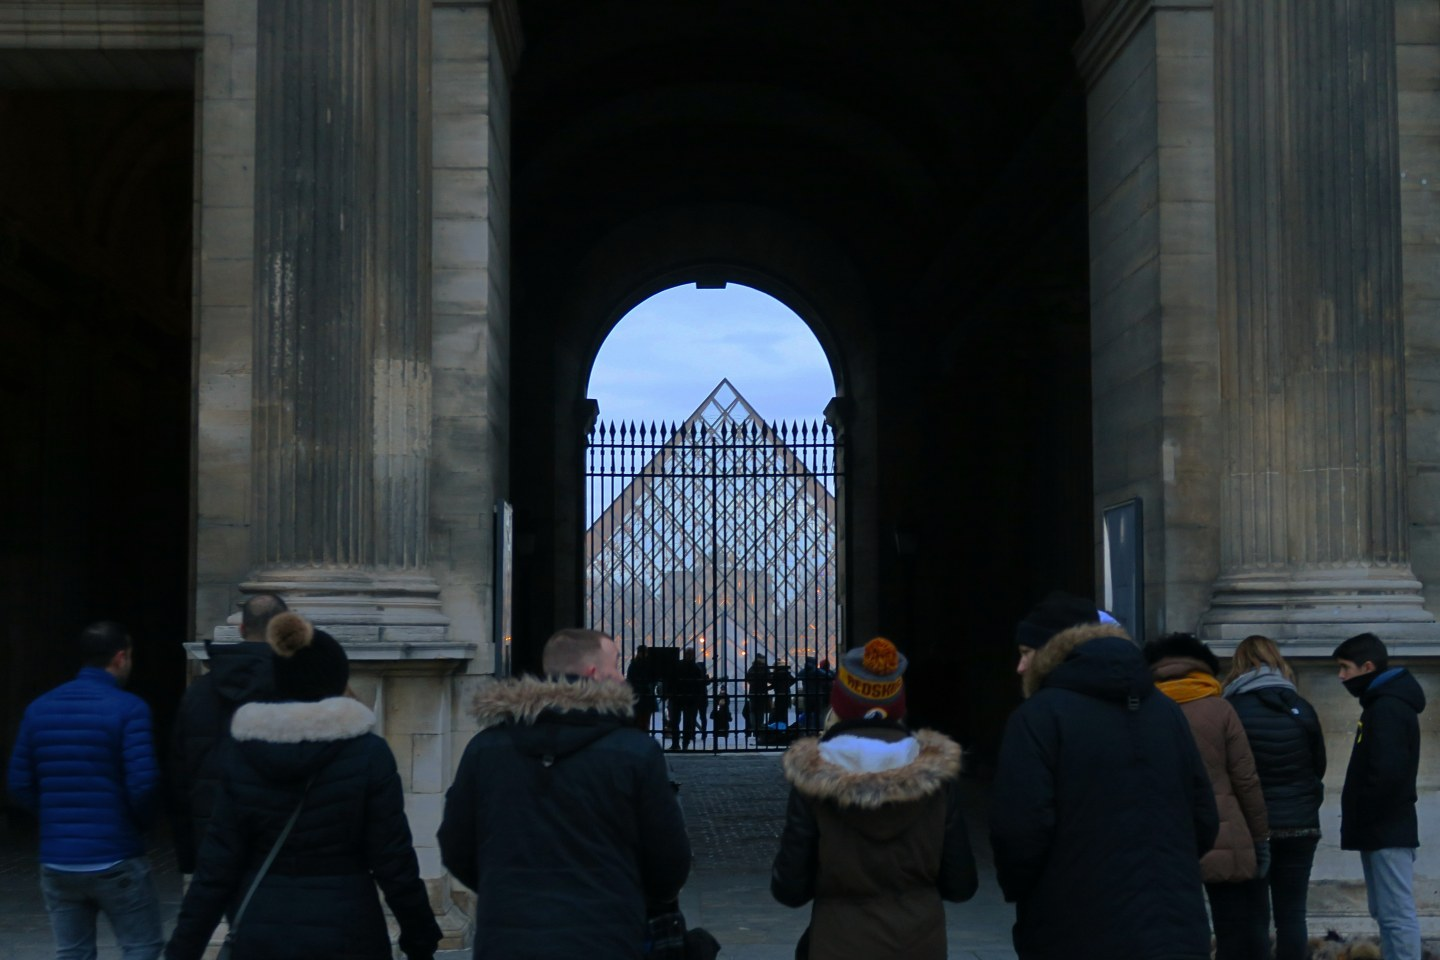 2 days in Paris - louvre